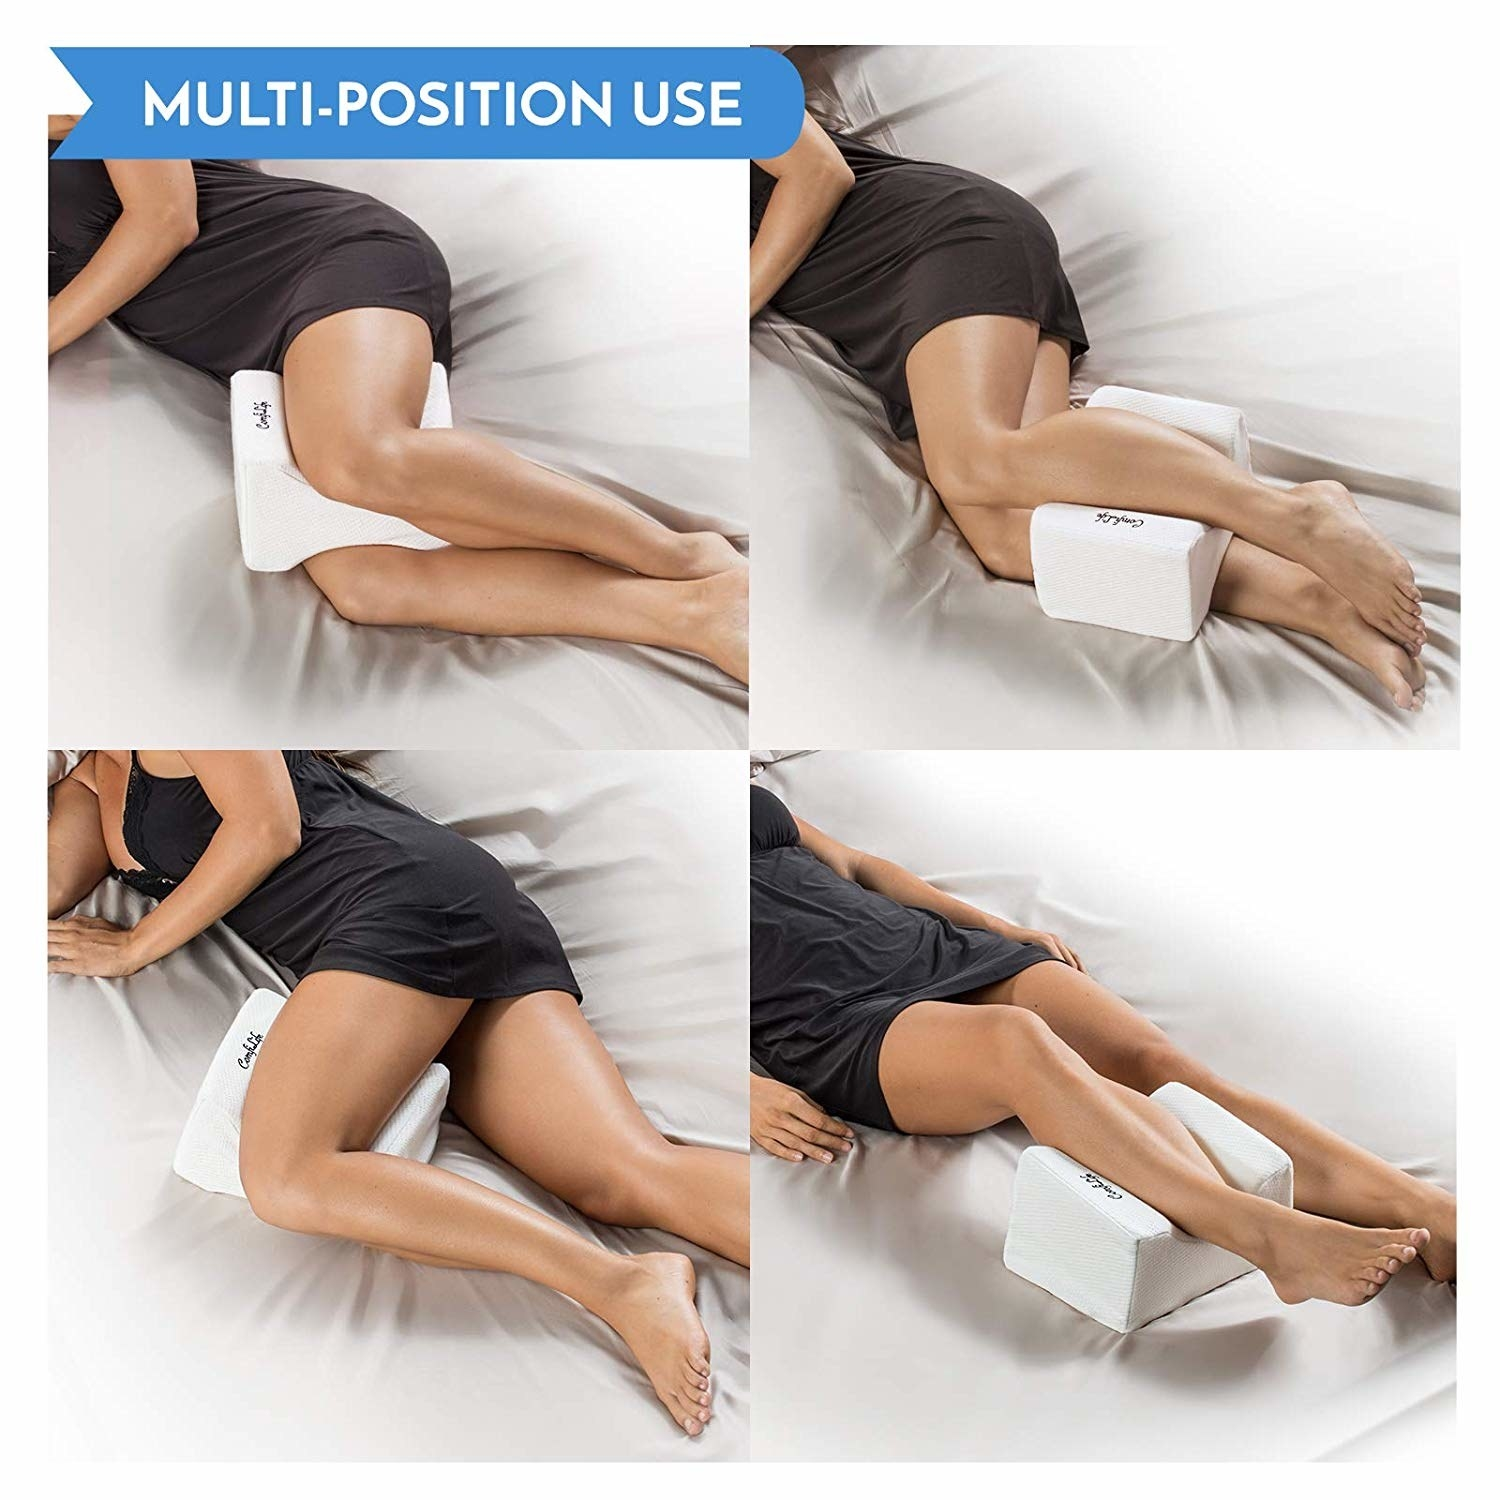 A reviewer showing the different ways to sleep with this: between thighs or calves, under one thigh, or under one calf